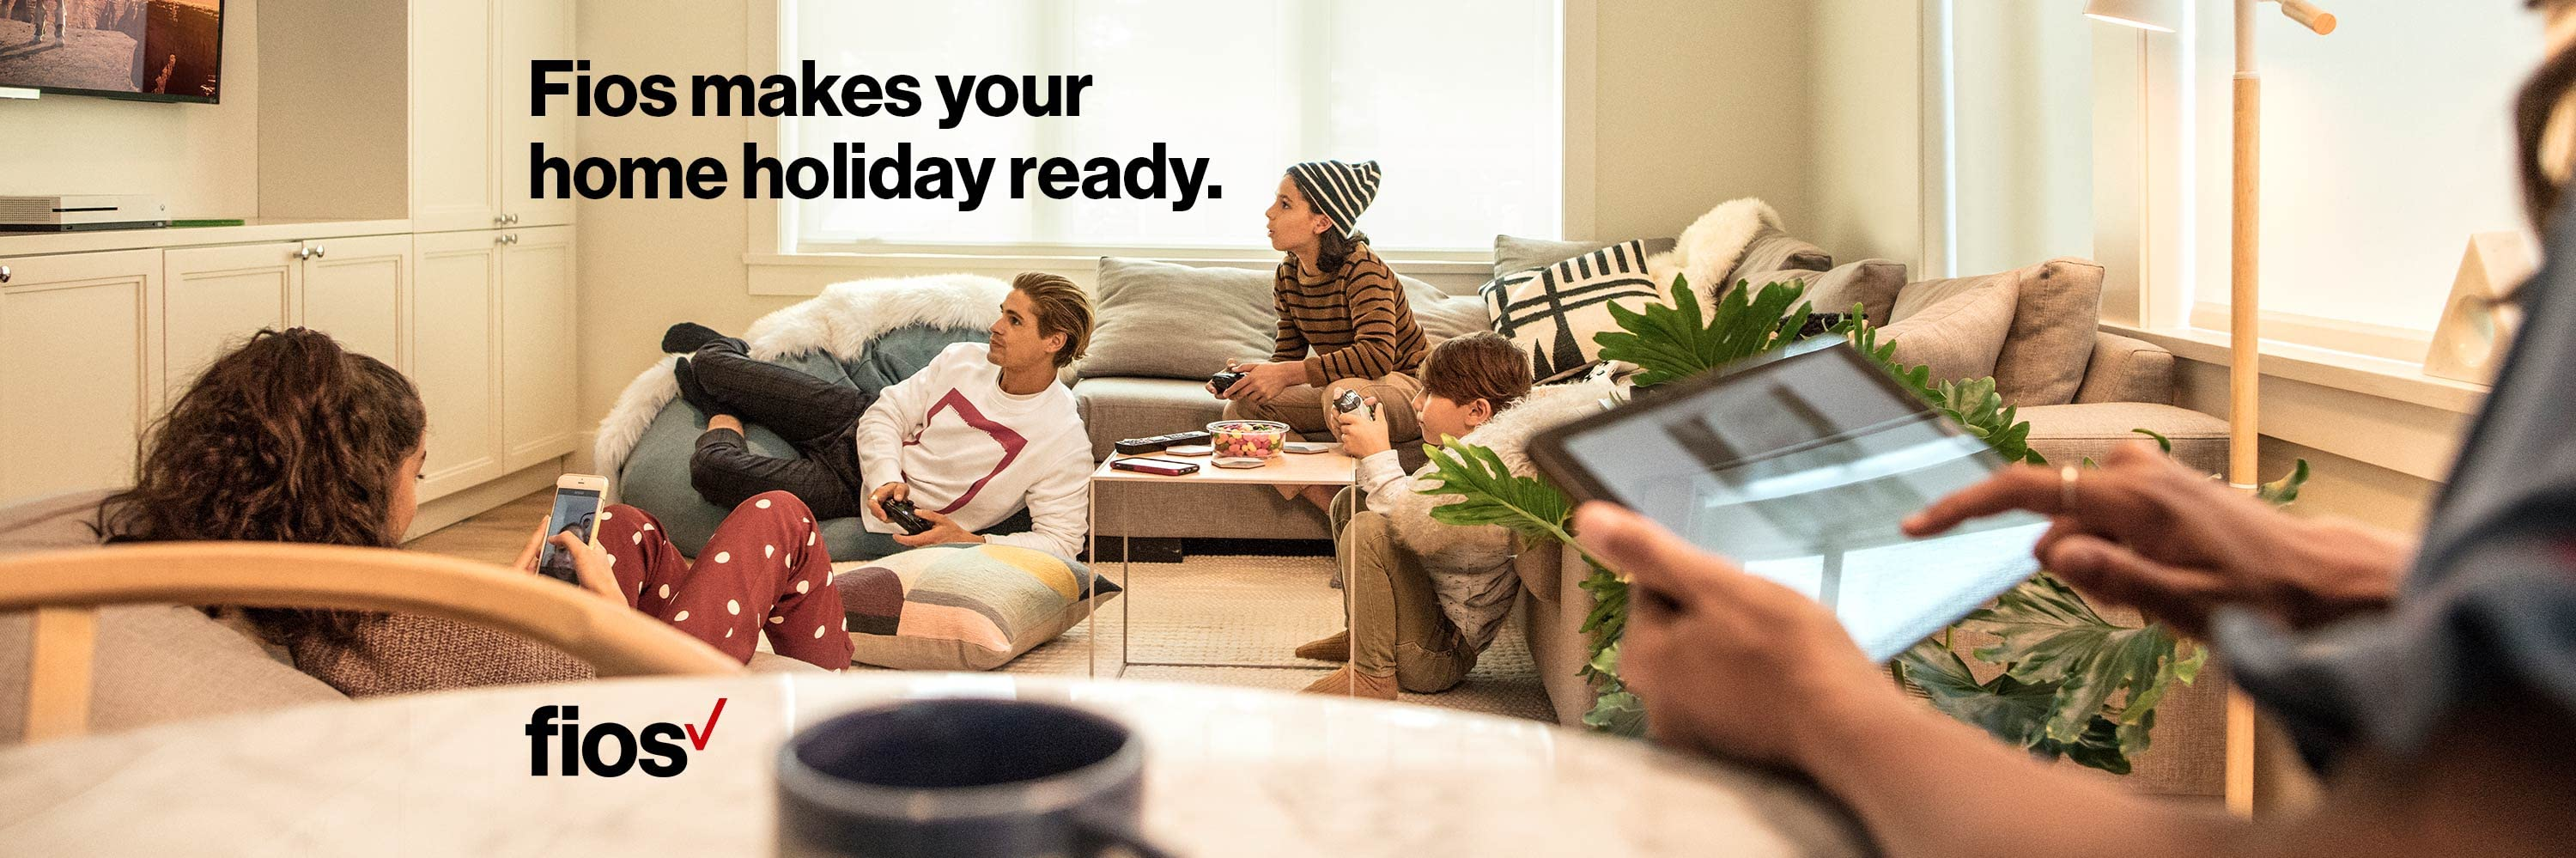 Fios makes your home holiday ready. 100% fiber-optic network. 100% phenomenal.